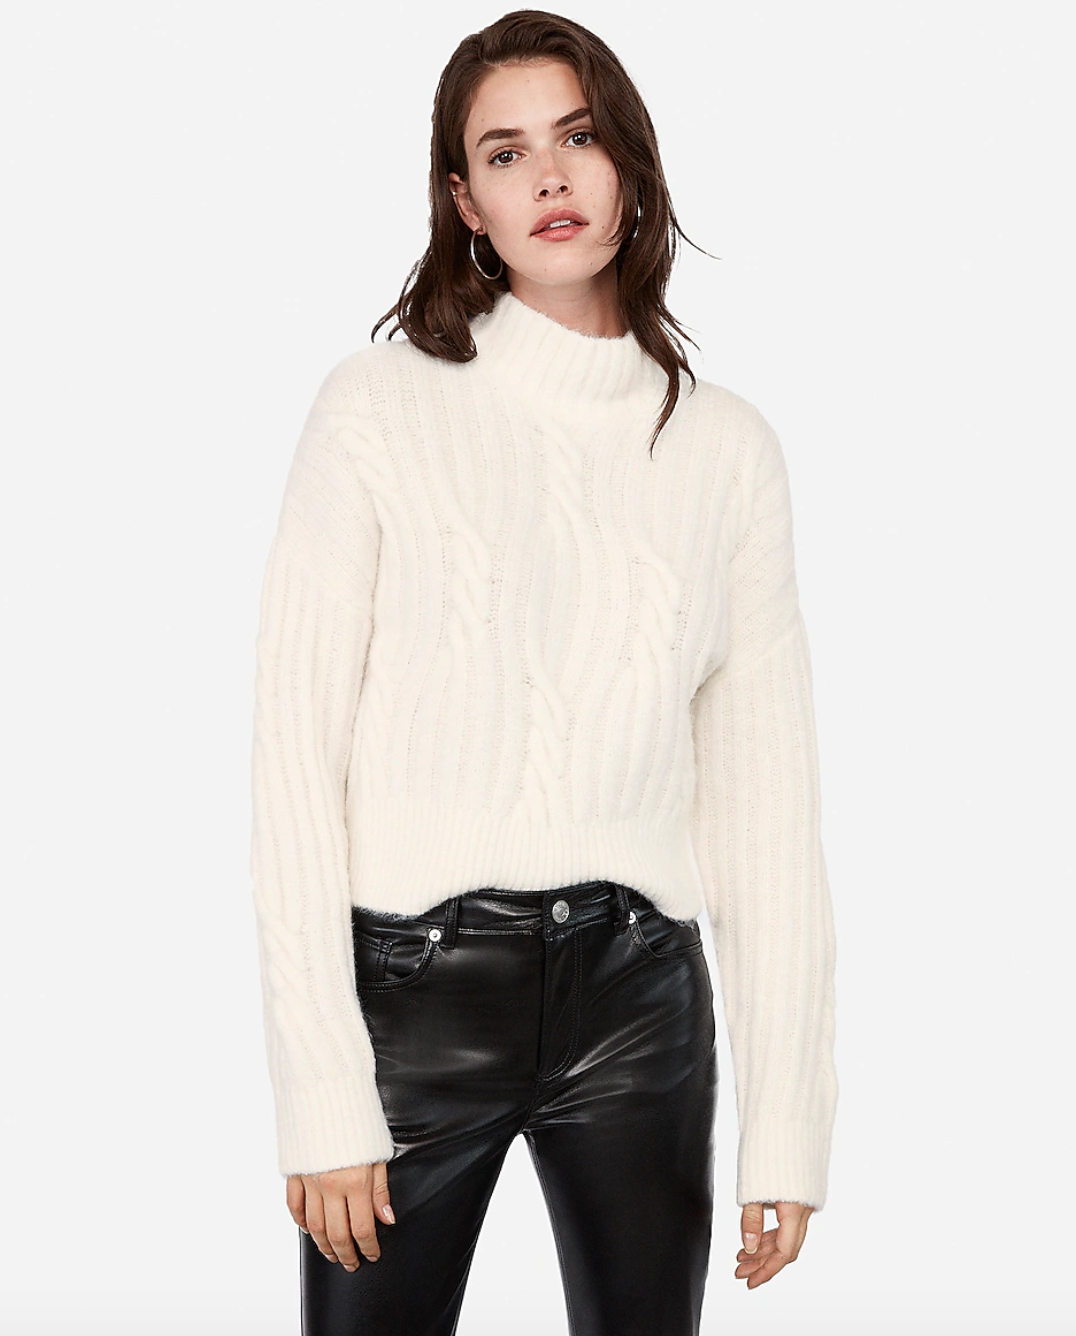 Funnel neck cable neck sweater